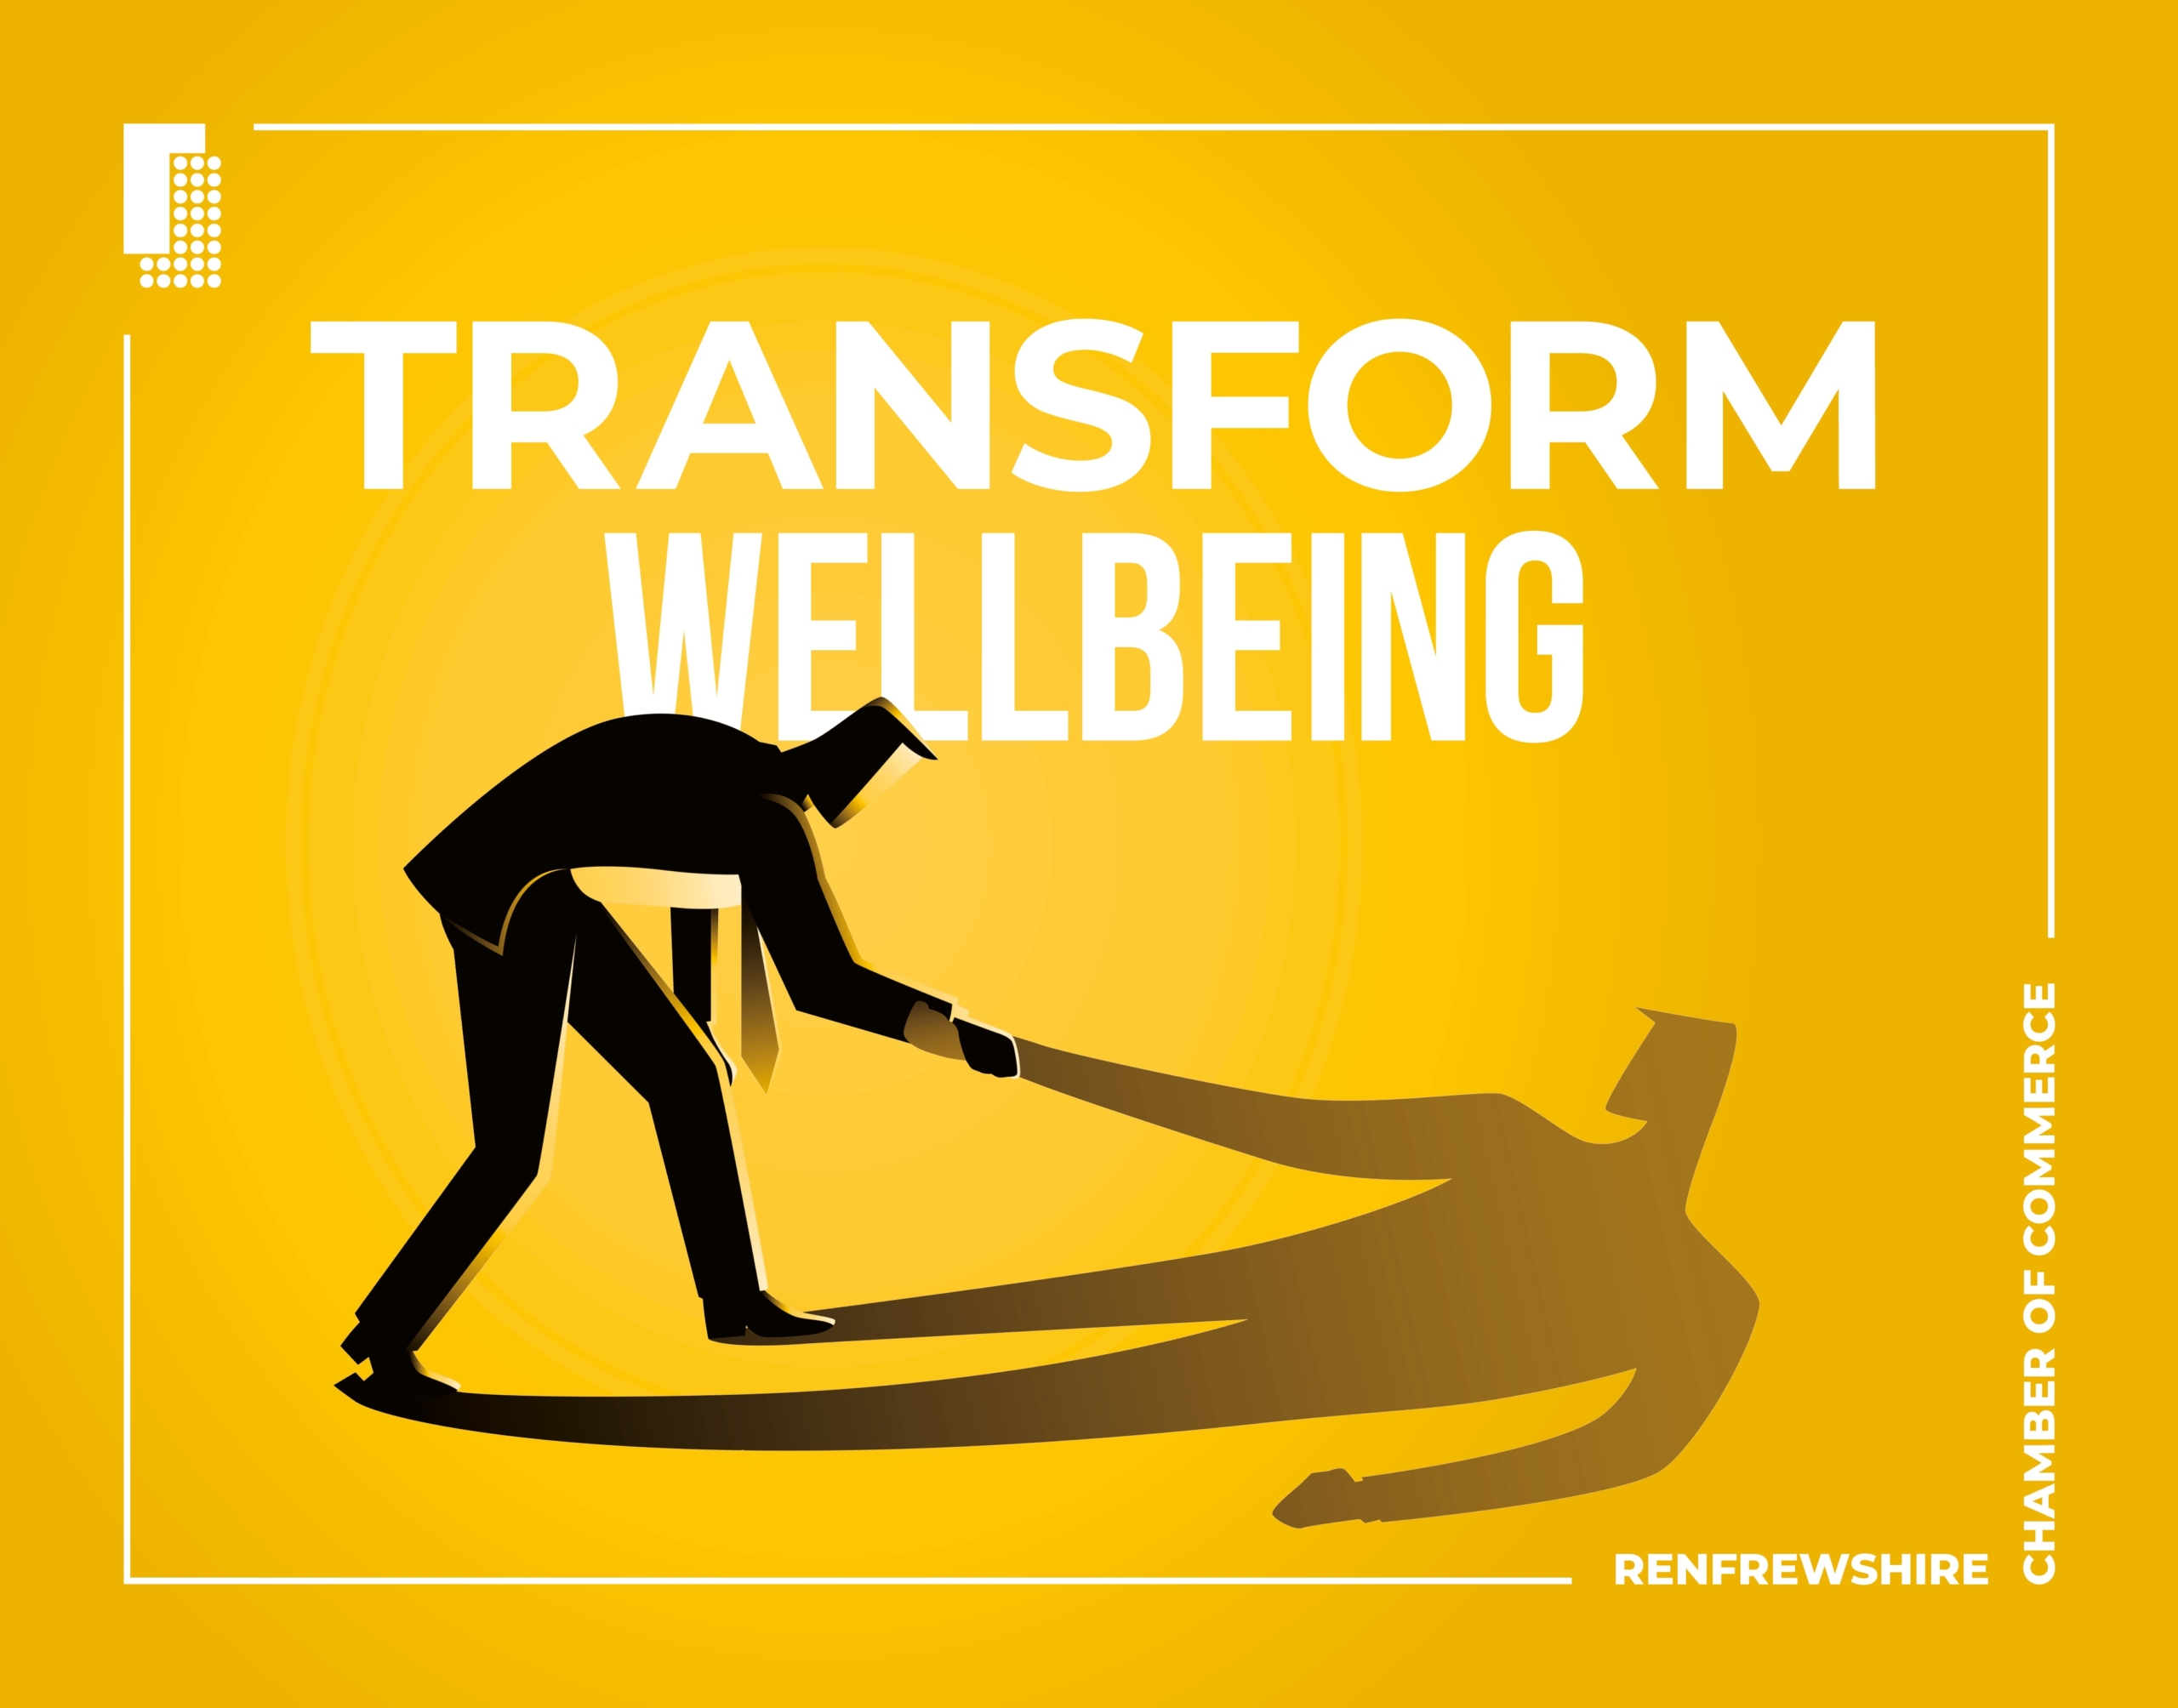 44227 Renfrewshire Chamber of Commerce - Webinar Graphics - Transform Wellbeing